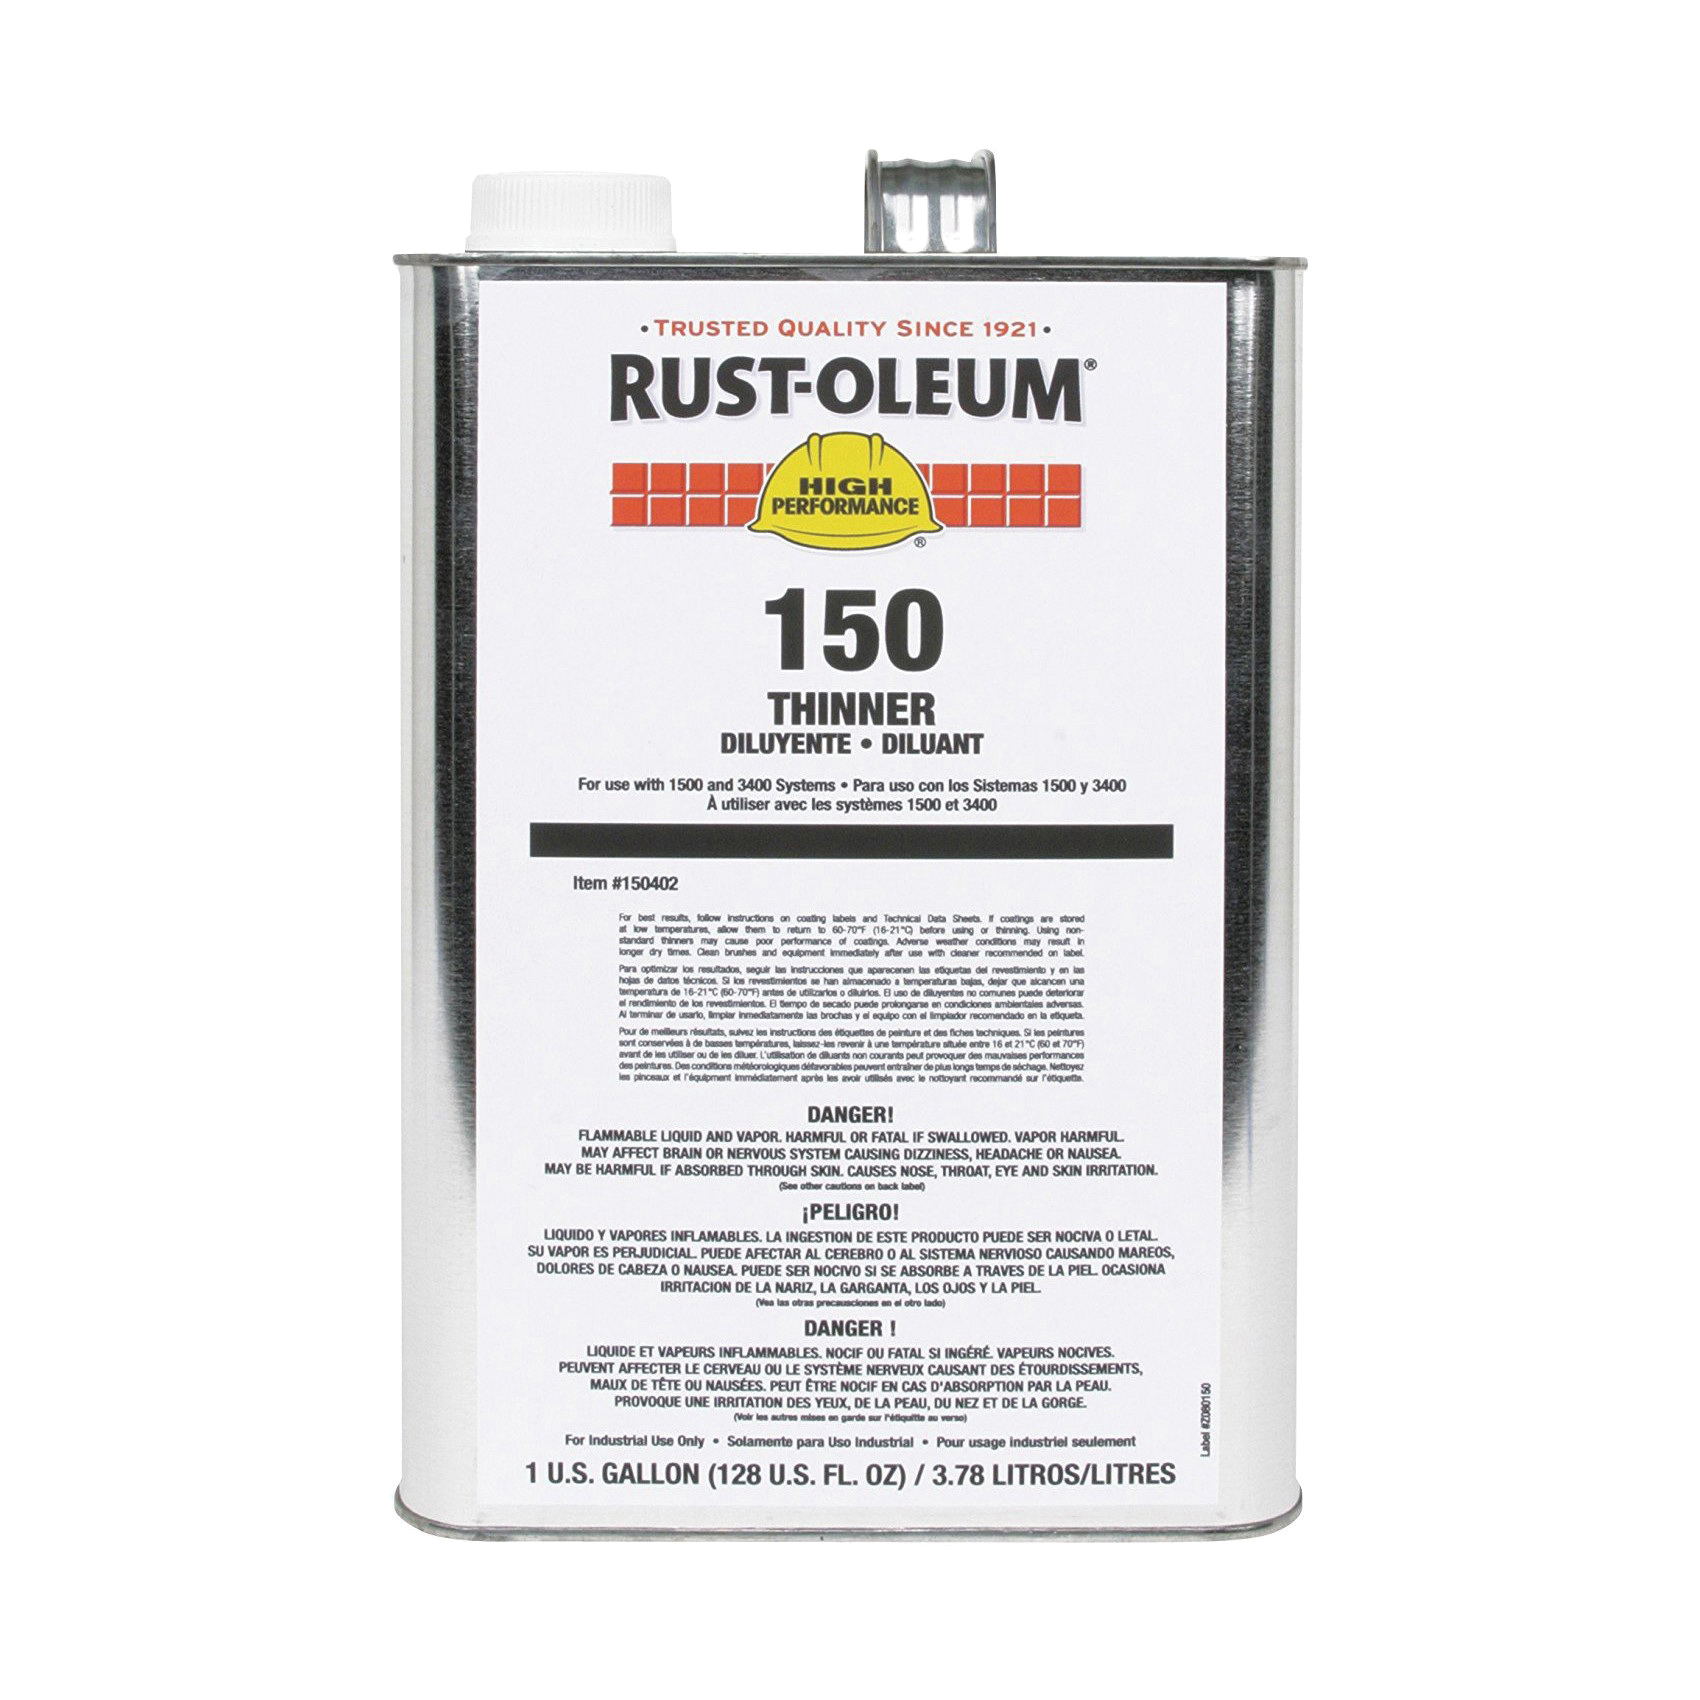 Rust-Oleum® 150402 1500 System Paint Thinner, 1 gal Can, Liquid Form, Clear, 220 to 520 sq-ft/gal Coverage